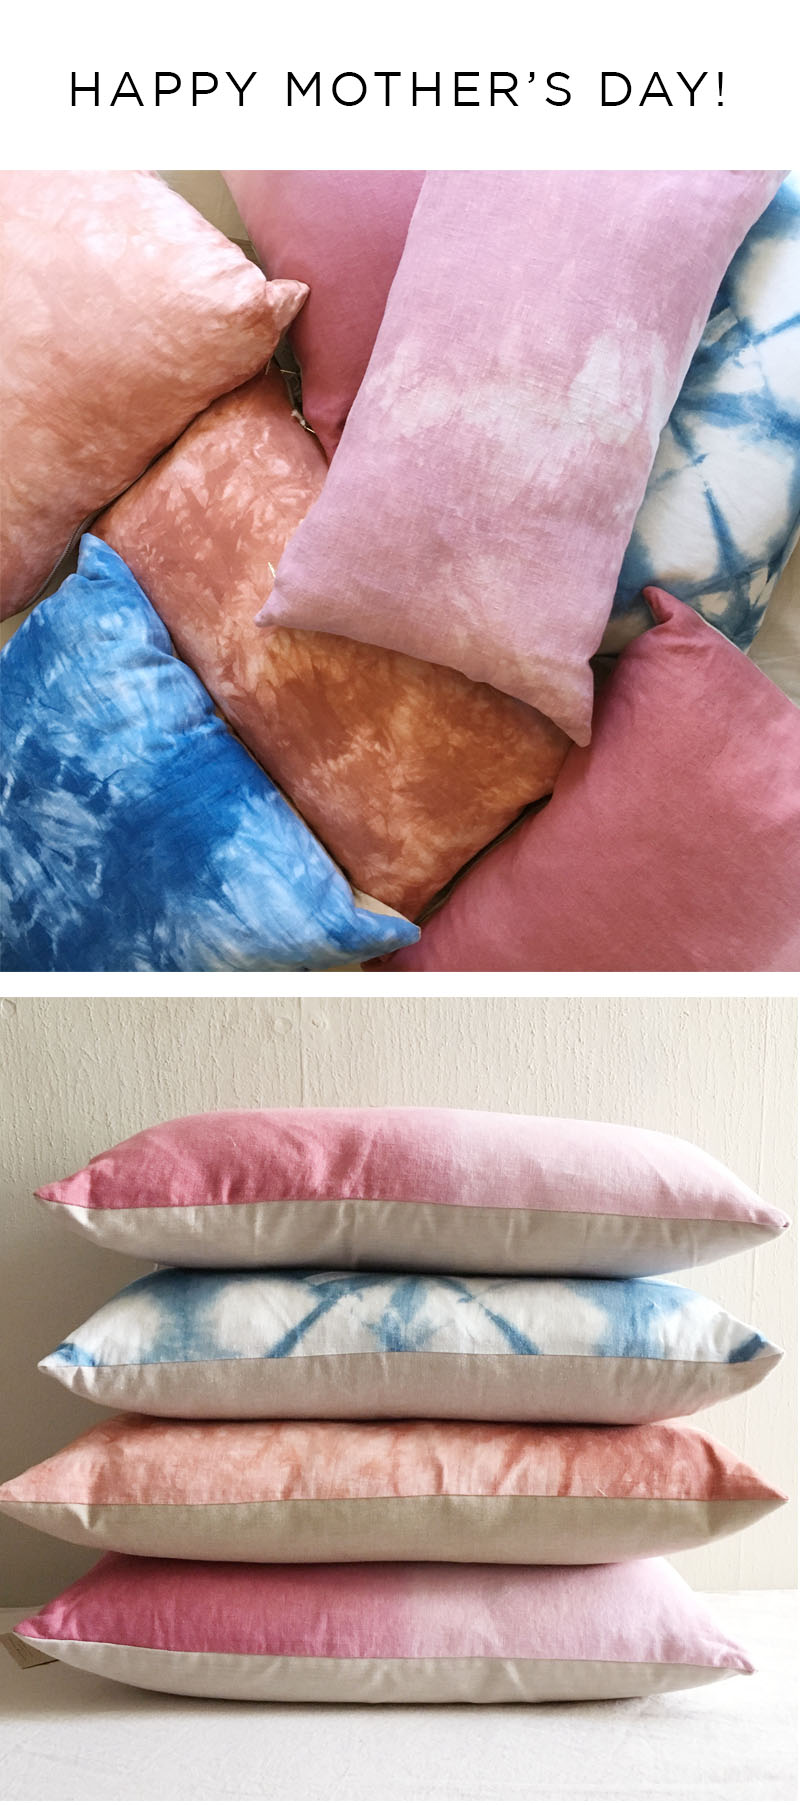 Mother's Day is coming!!  Take 20% off any order over $50 at  Flora Poste Studio  by entering the code MAMAME at checkout! Ends Sunday April 30 at midnight!   This is on top of our  pillows  which are already on sale! ONE  cotton velvet pillow  left in stock! And various colors and sizes of linen pillows.  Our  organic cotton gauze scarves  are another great Mother's Day gift,  made from GOTS-certified organic cotton gauze, sourced from a fair-trade, female owned and operated mill in India. Our  cocktail napkins  are made from an organic cotton broadcloth from the same mill.   And as always we have our best-selling  flour sack napkins  and  dishtowels  in a variety of colors.   Retailers, we are accepting applications for wholesale accounts!  Please  email me  for a line sheet!  Happy Spring! xo Kendra